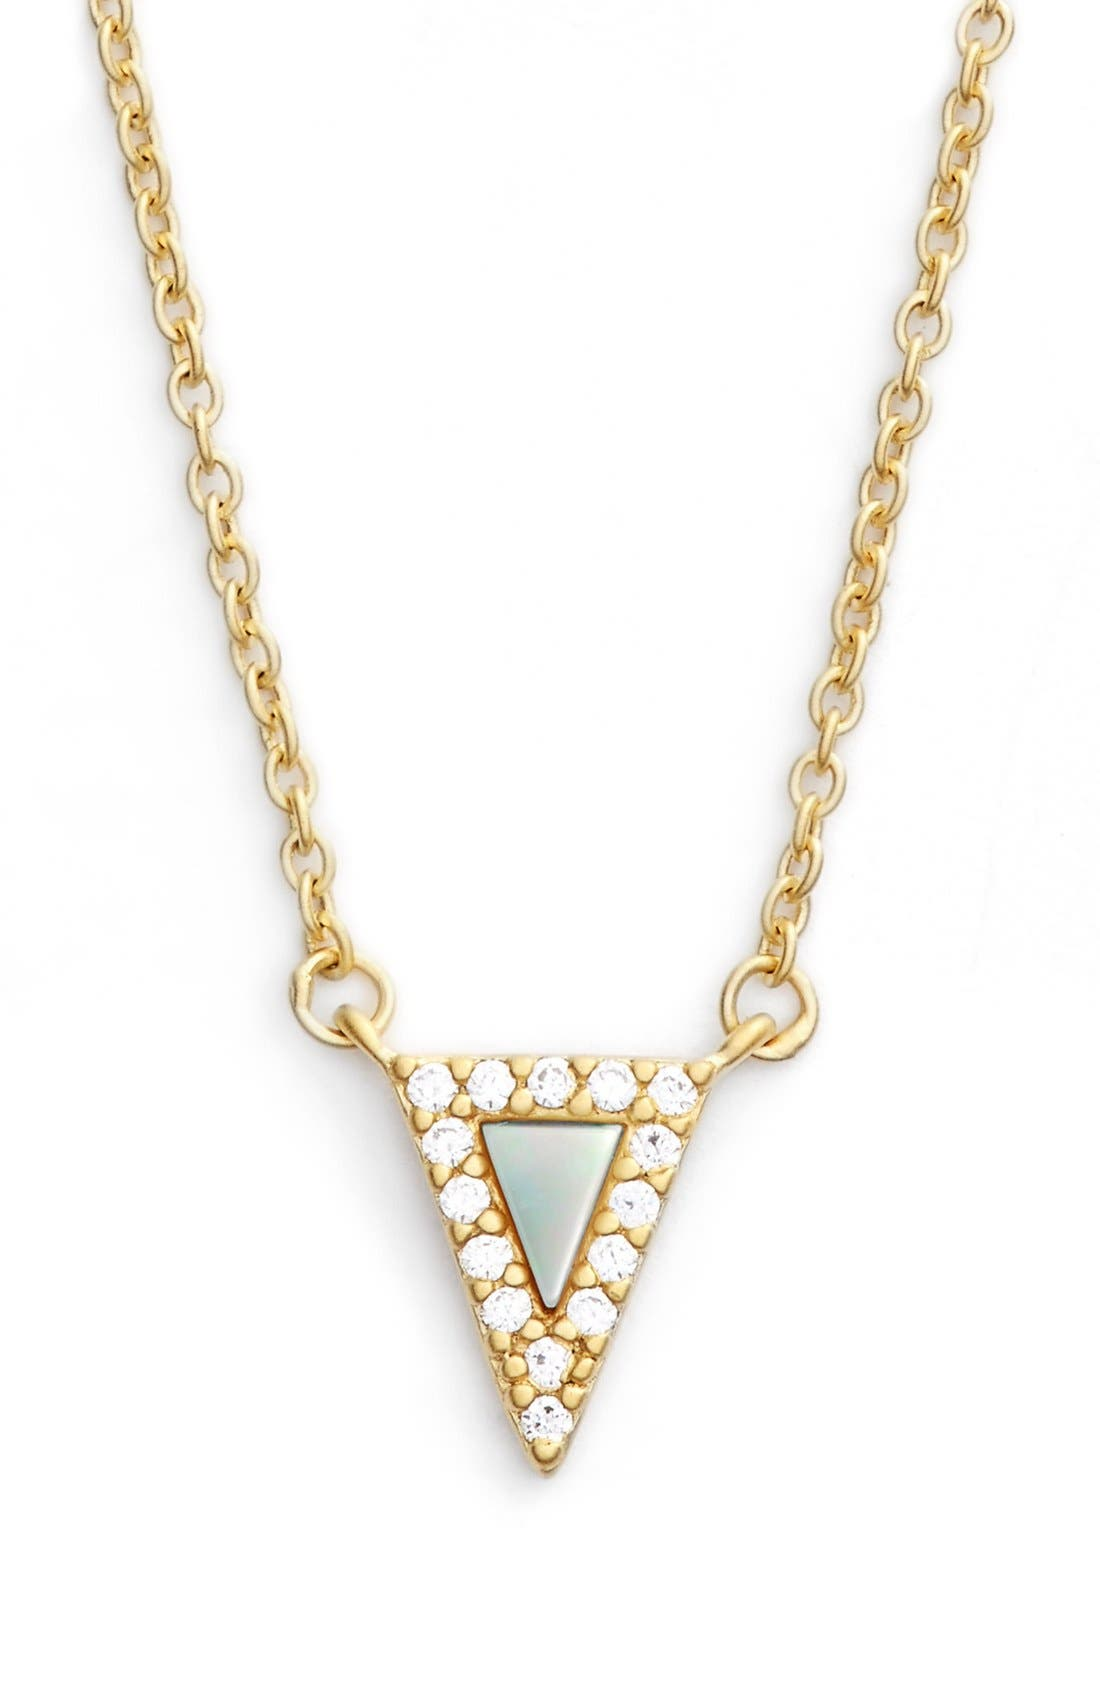 Main Image - FREIDA ROTHMAN 'Visionary' Small Triangle Pendant Necklace